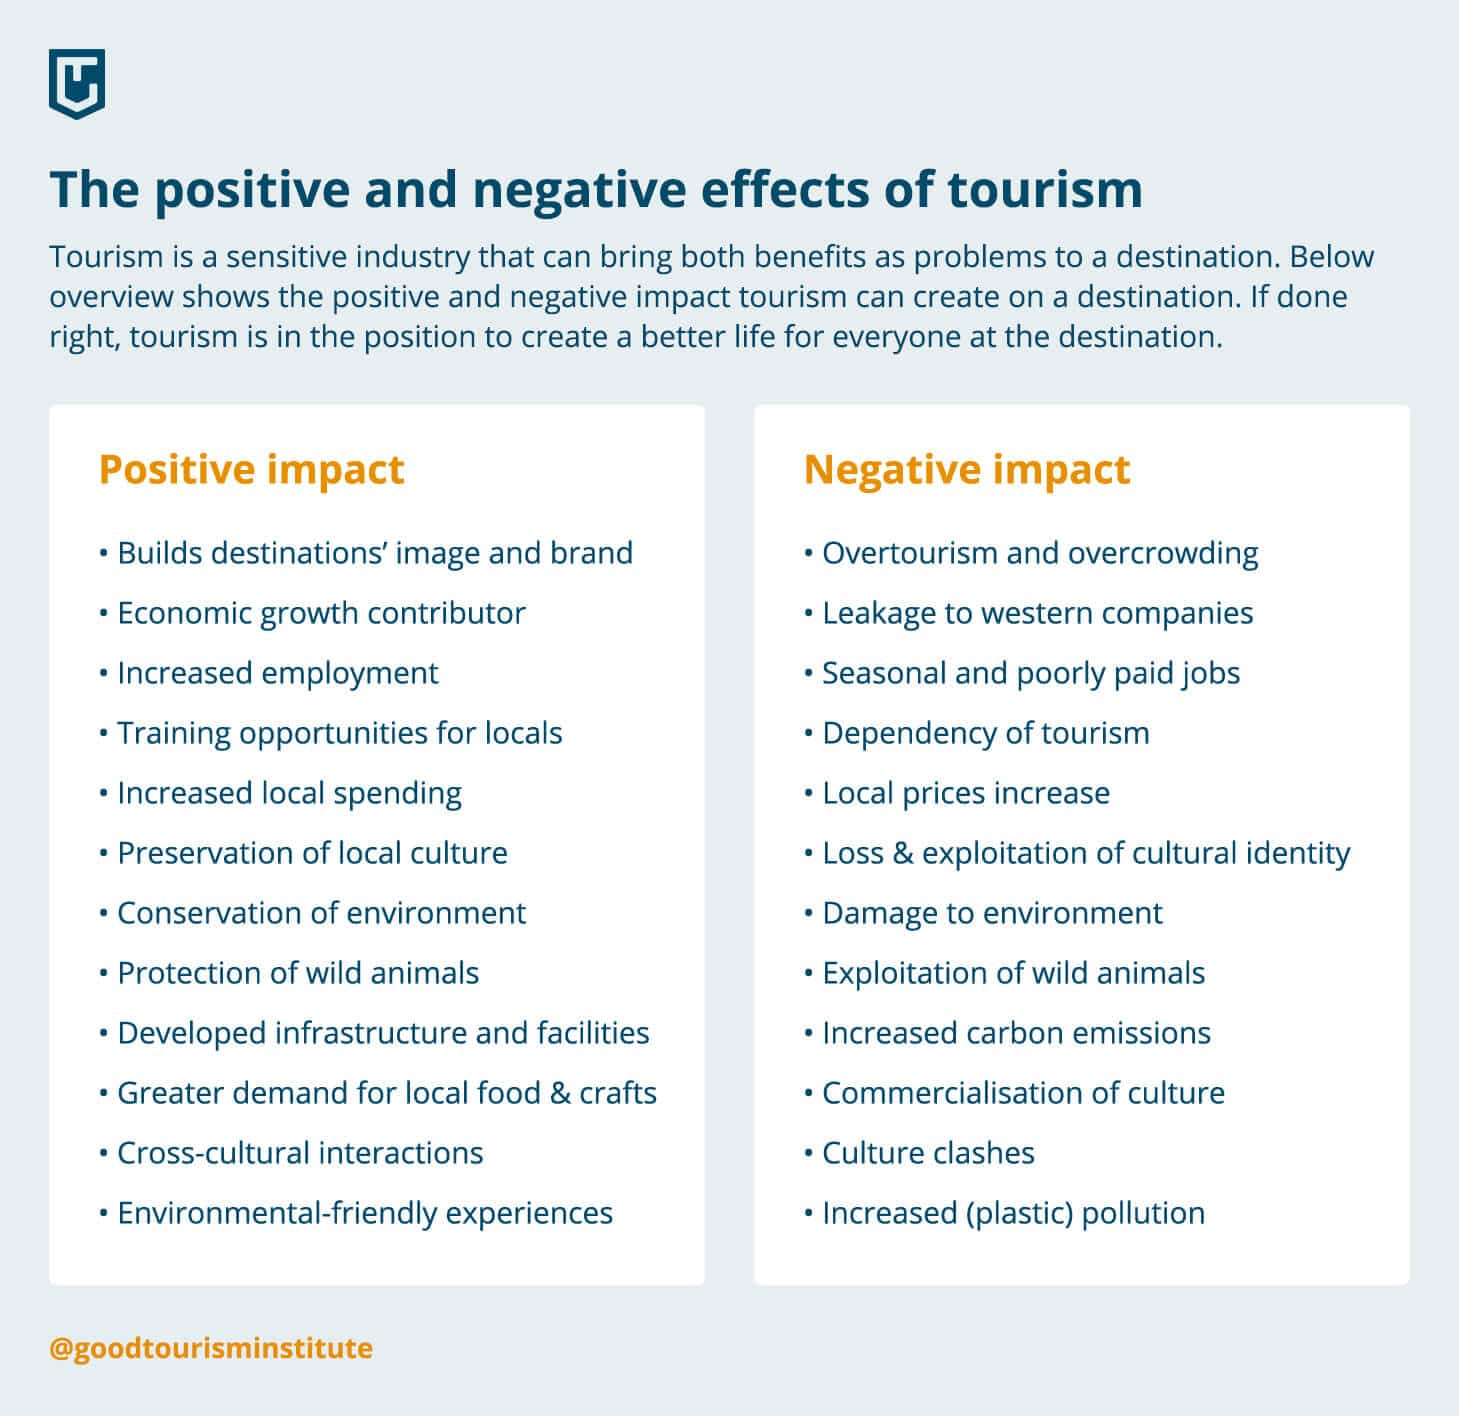 The possitive and negative effects of tourism